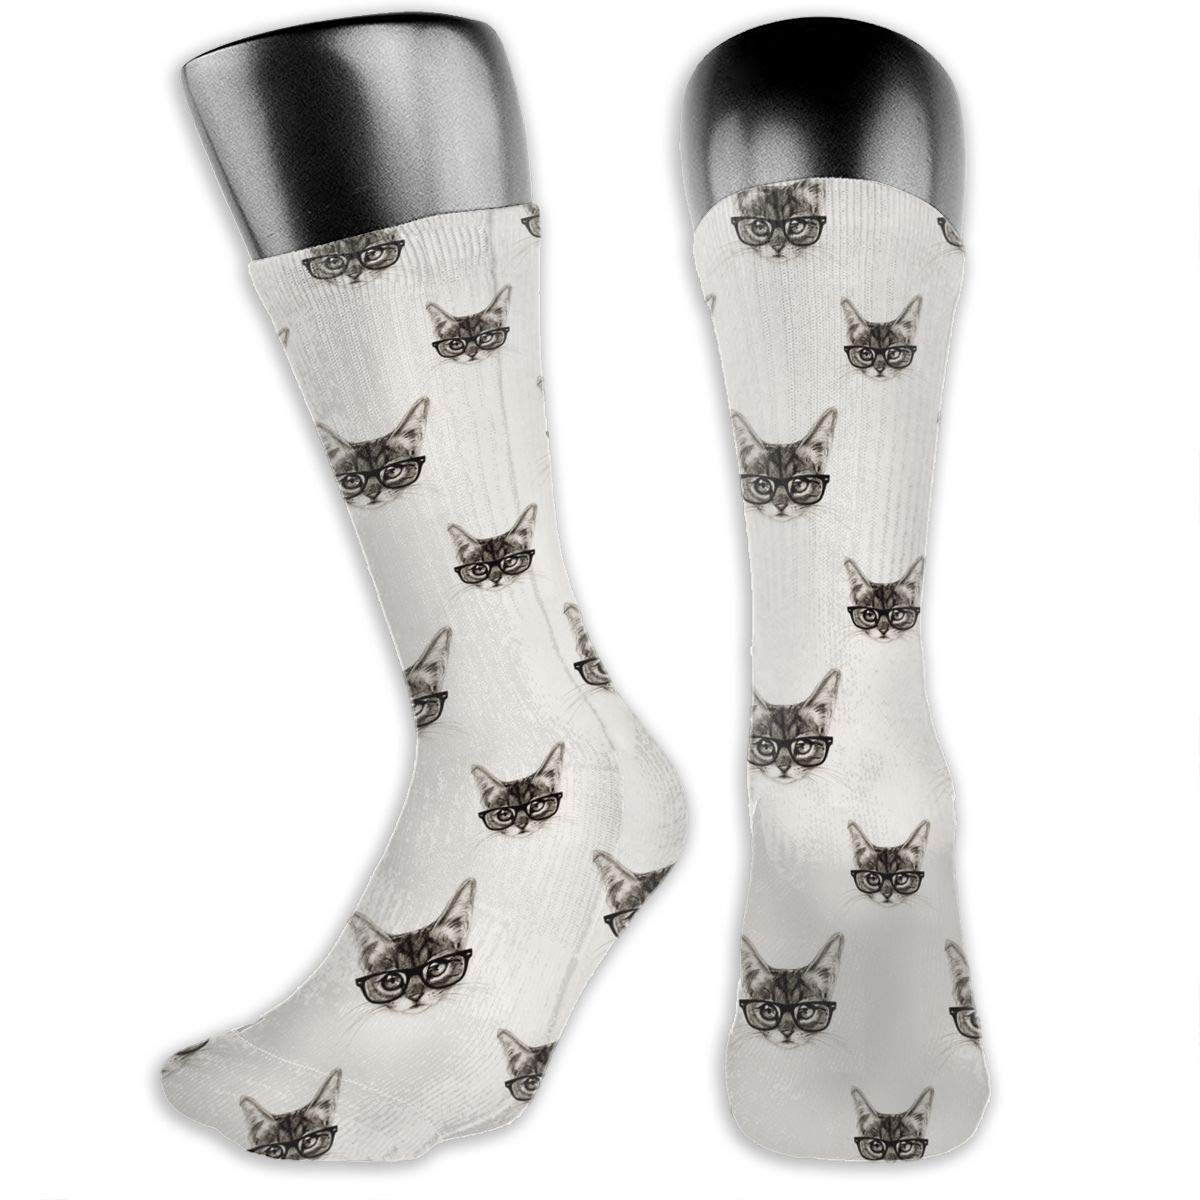 Pattern Cotton Casual Colorful Fun Below Knee High Athletic Socks